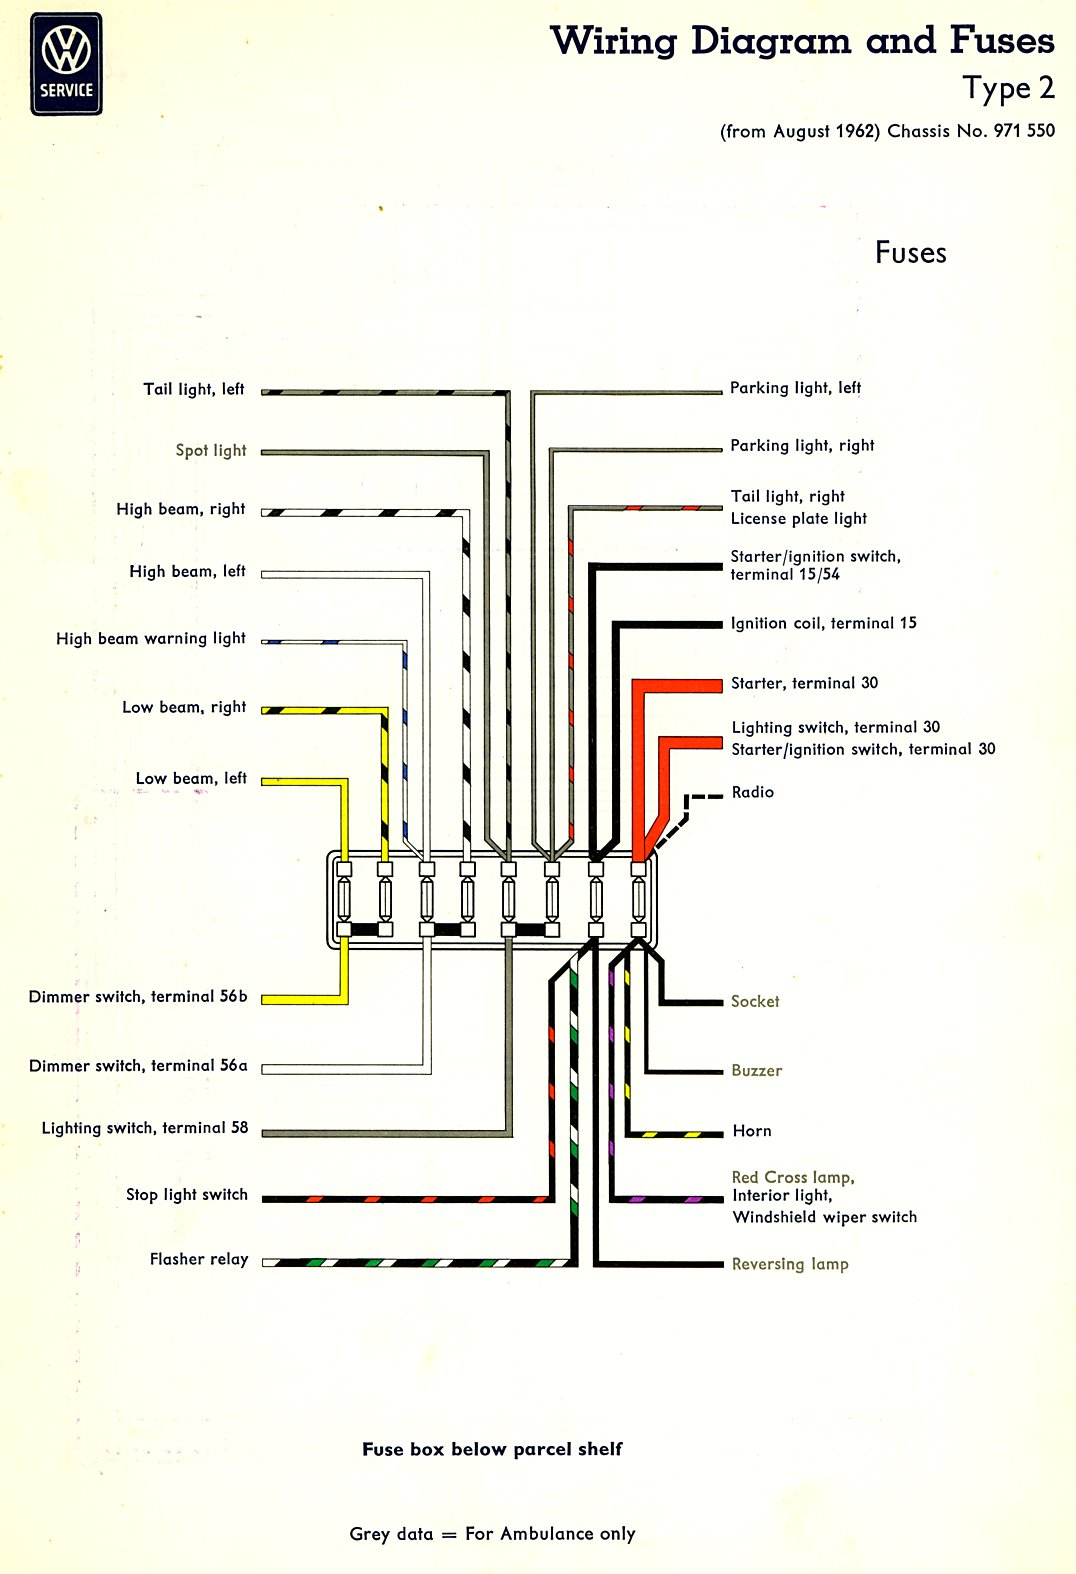 bus_63_fuses thesamba com type 2 wiring diagrams 1972 vw beetle fuse box diagram at nearapp.co